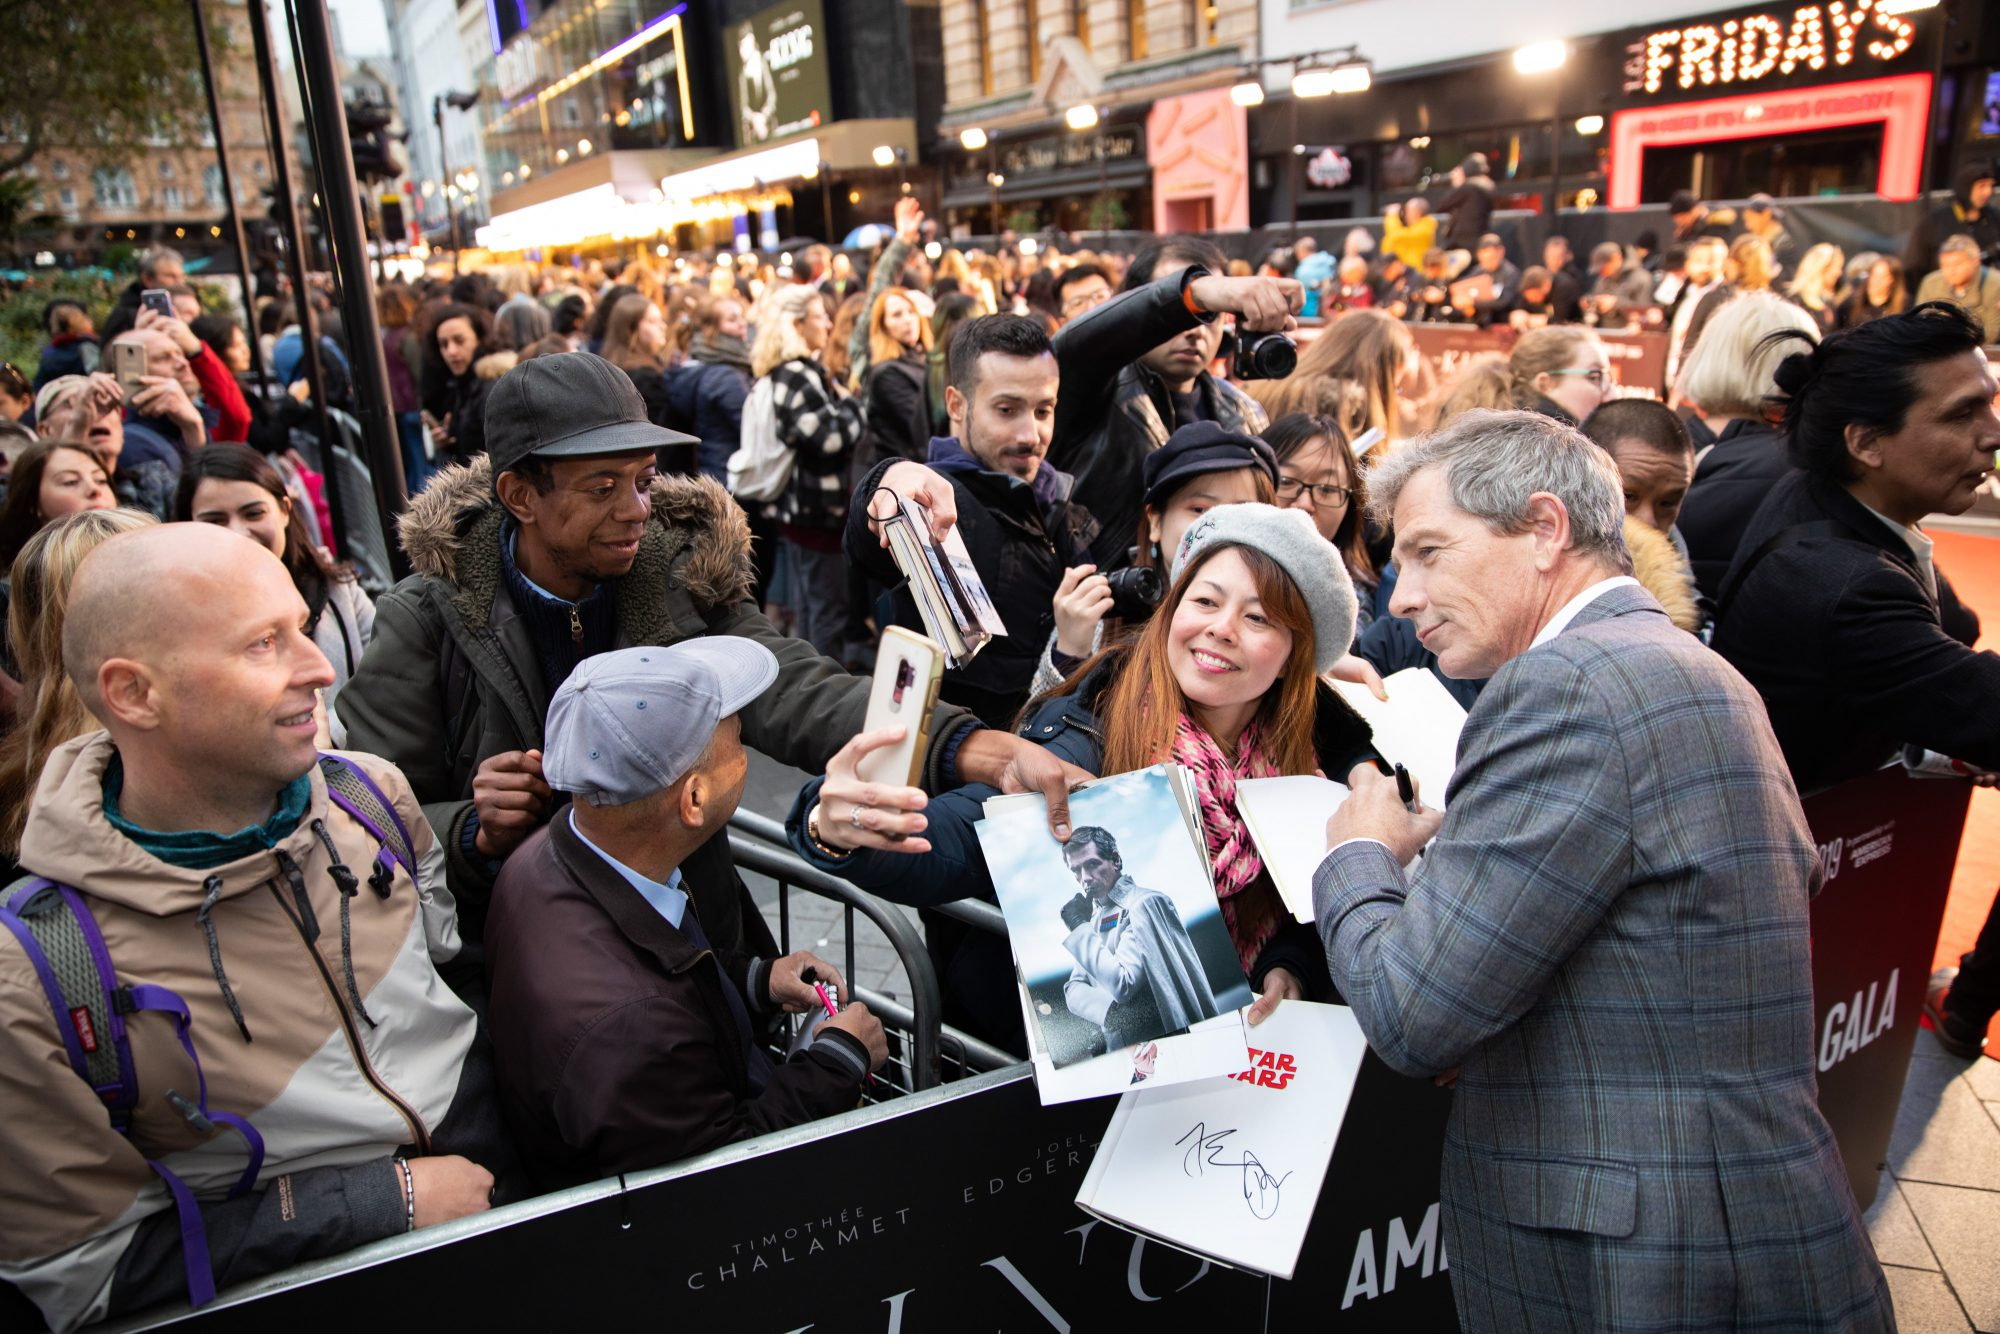 Ben Mendelsohn at The King UK Premiere during the 63rd BFI London Film Festival at Odeon Luxe Leicester Square on 3rd October 2019.  Photos: Netflix